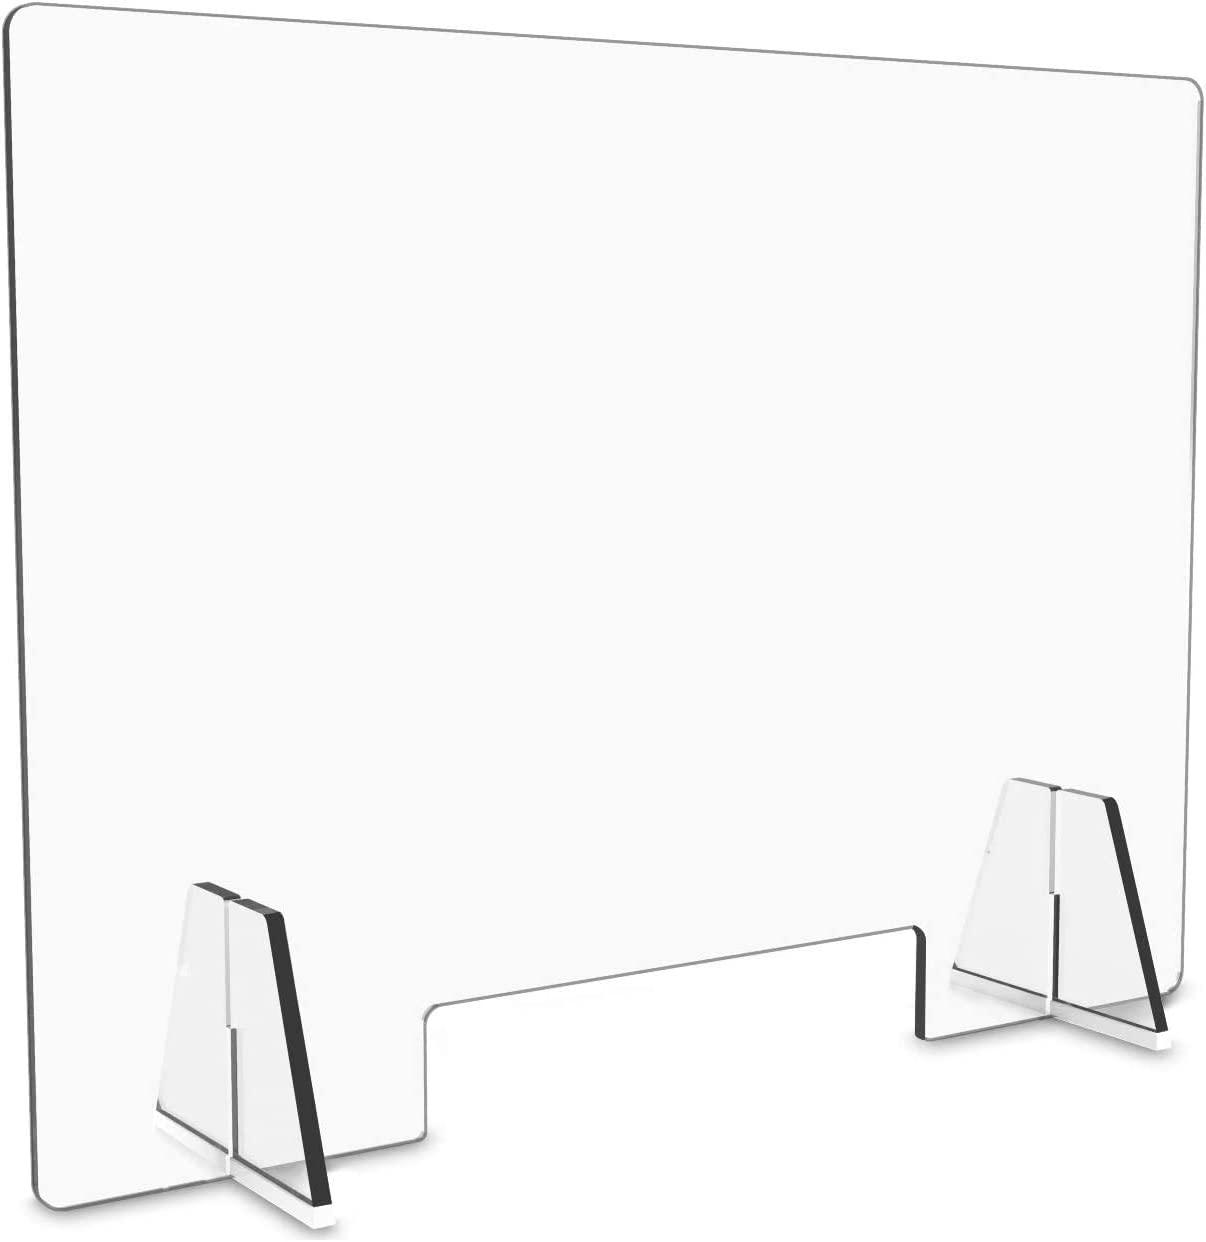 Protective Sneeze Guard for Counter and Desk - Freestanding Clear Acrylic Shield for Business and Customer Safety, Portable Plexiglass Barrier, Food Screen,24